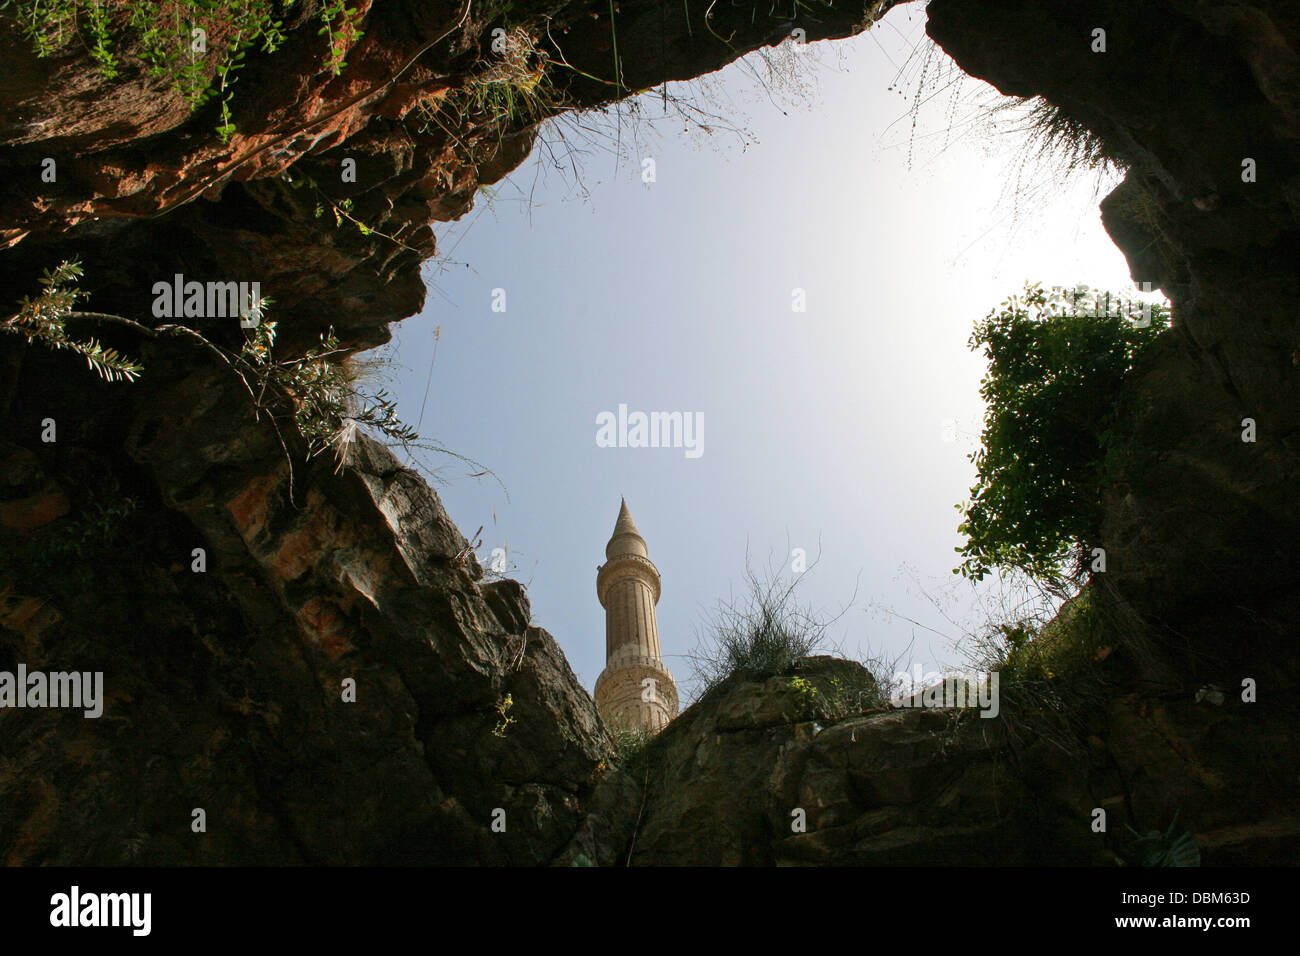 Minaret from Cave of The Seven Sleepers in Hatay, Turkey - Stock Image